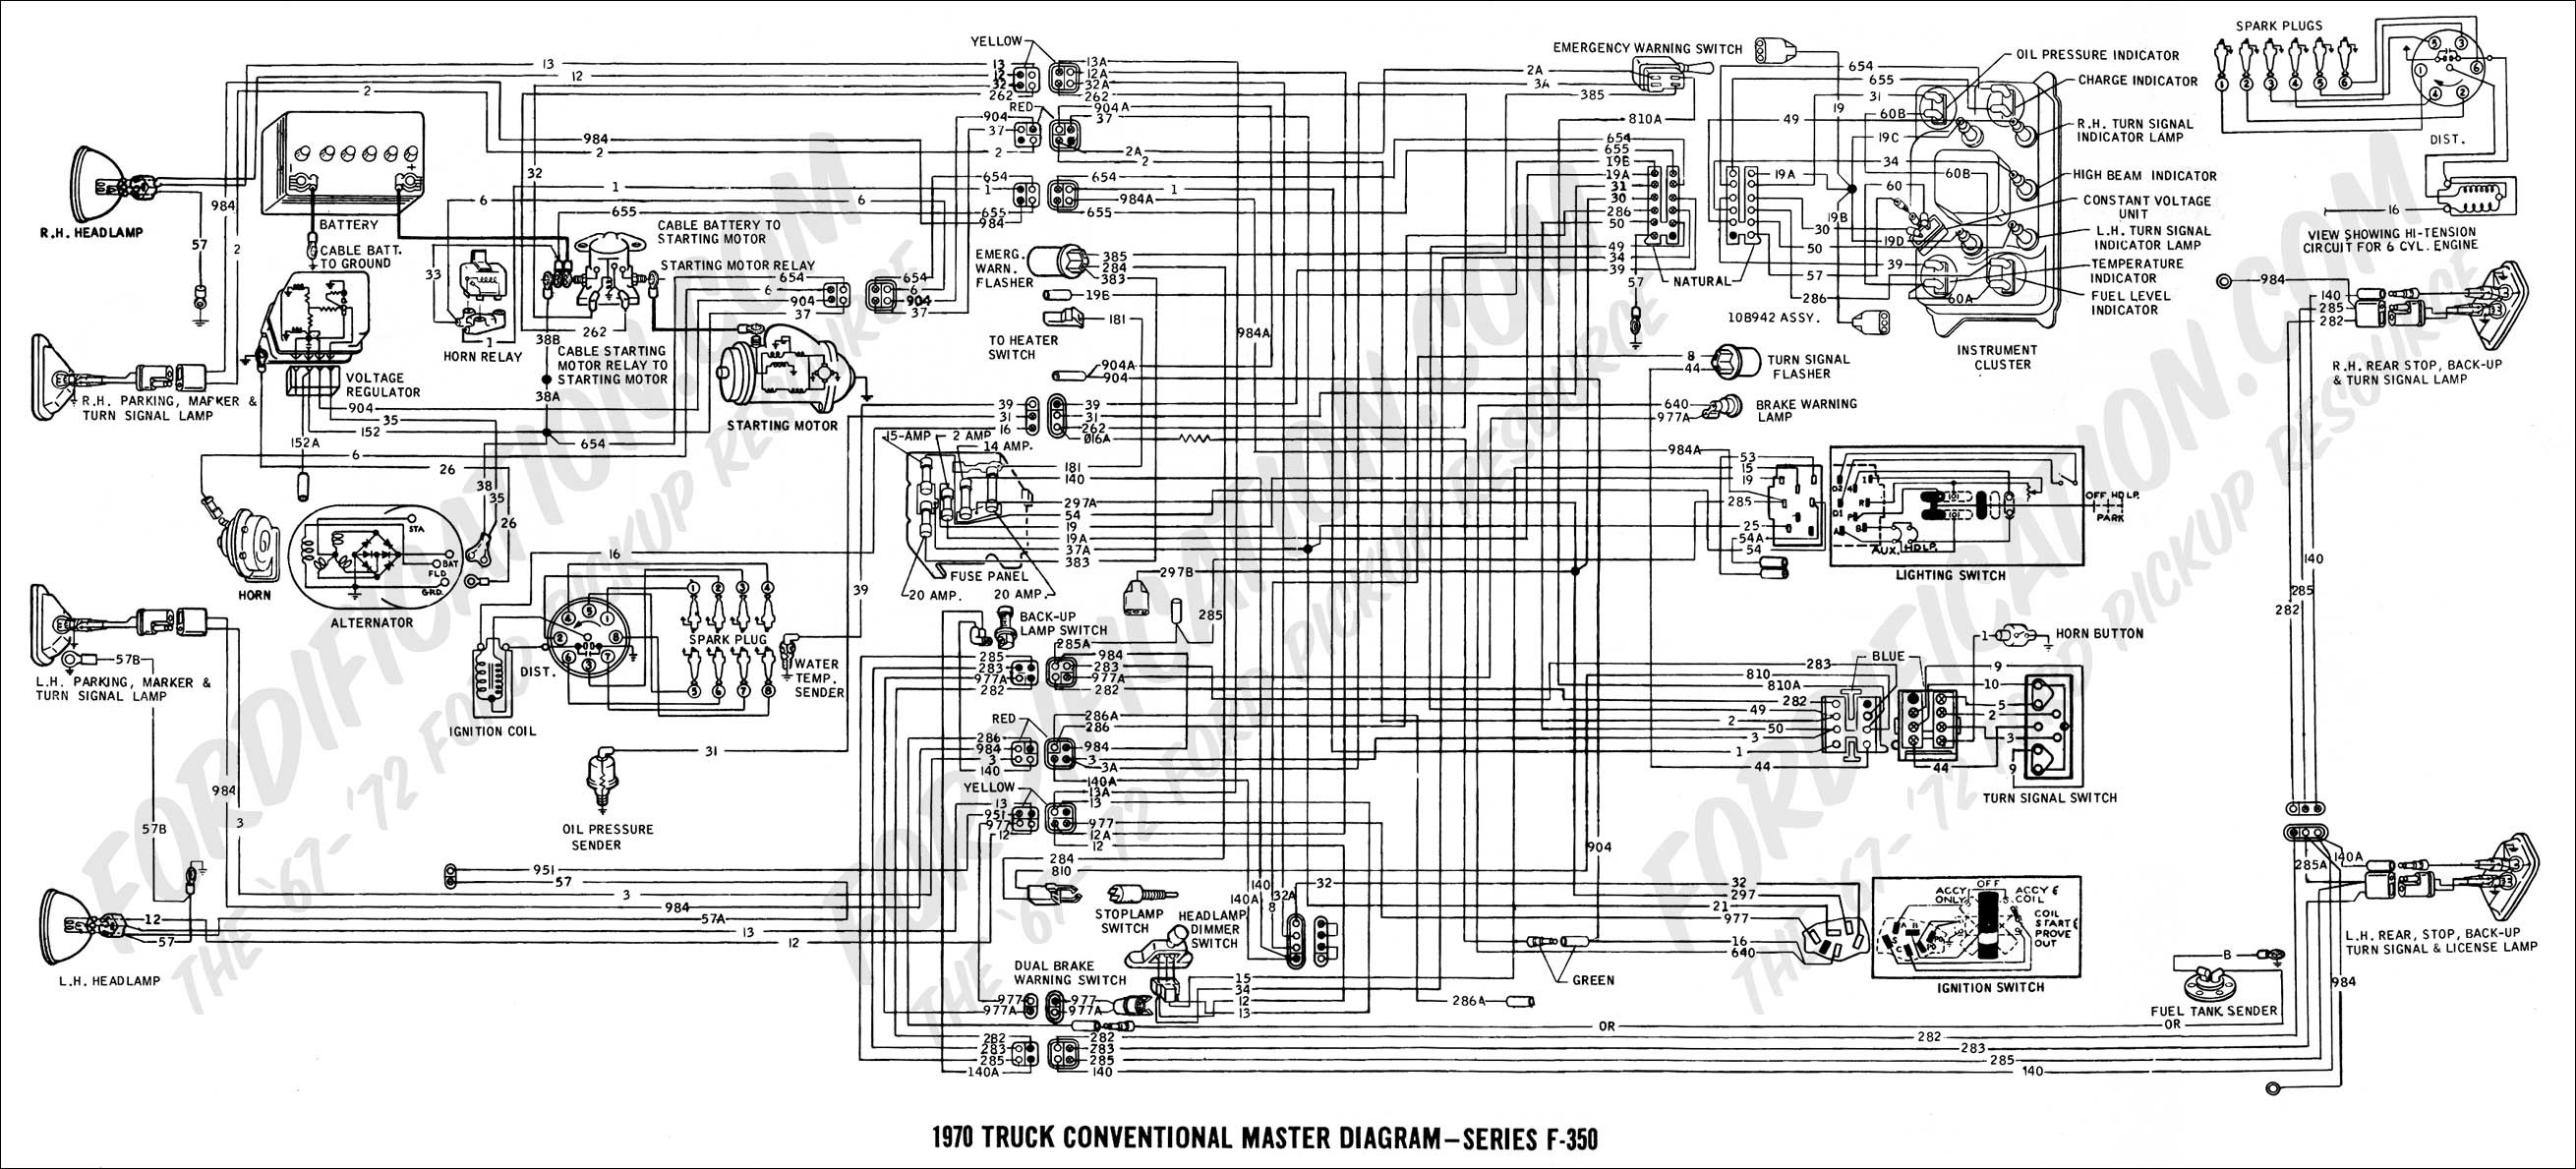 1998 Ford Mustang Wiring Diagram 1968 Ranger Solenoid For To 2007 Of